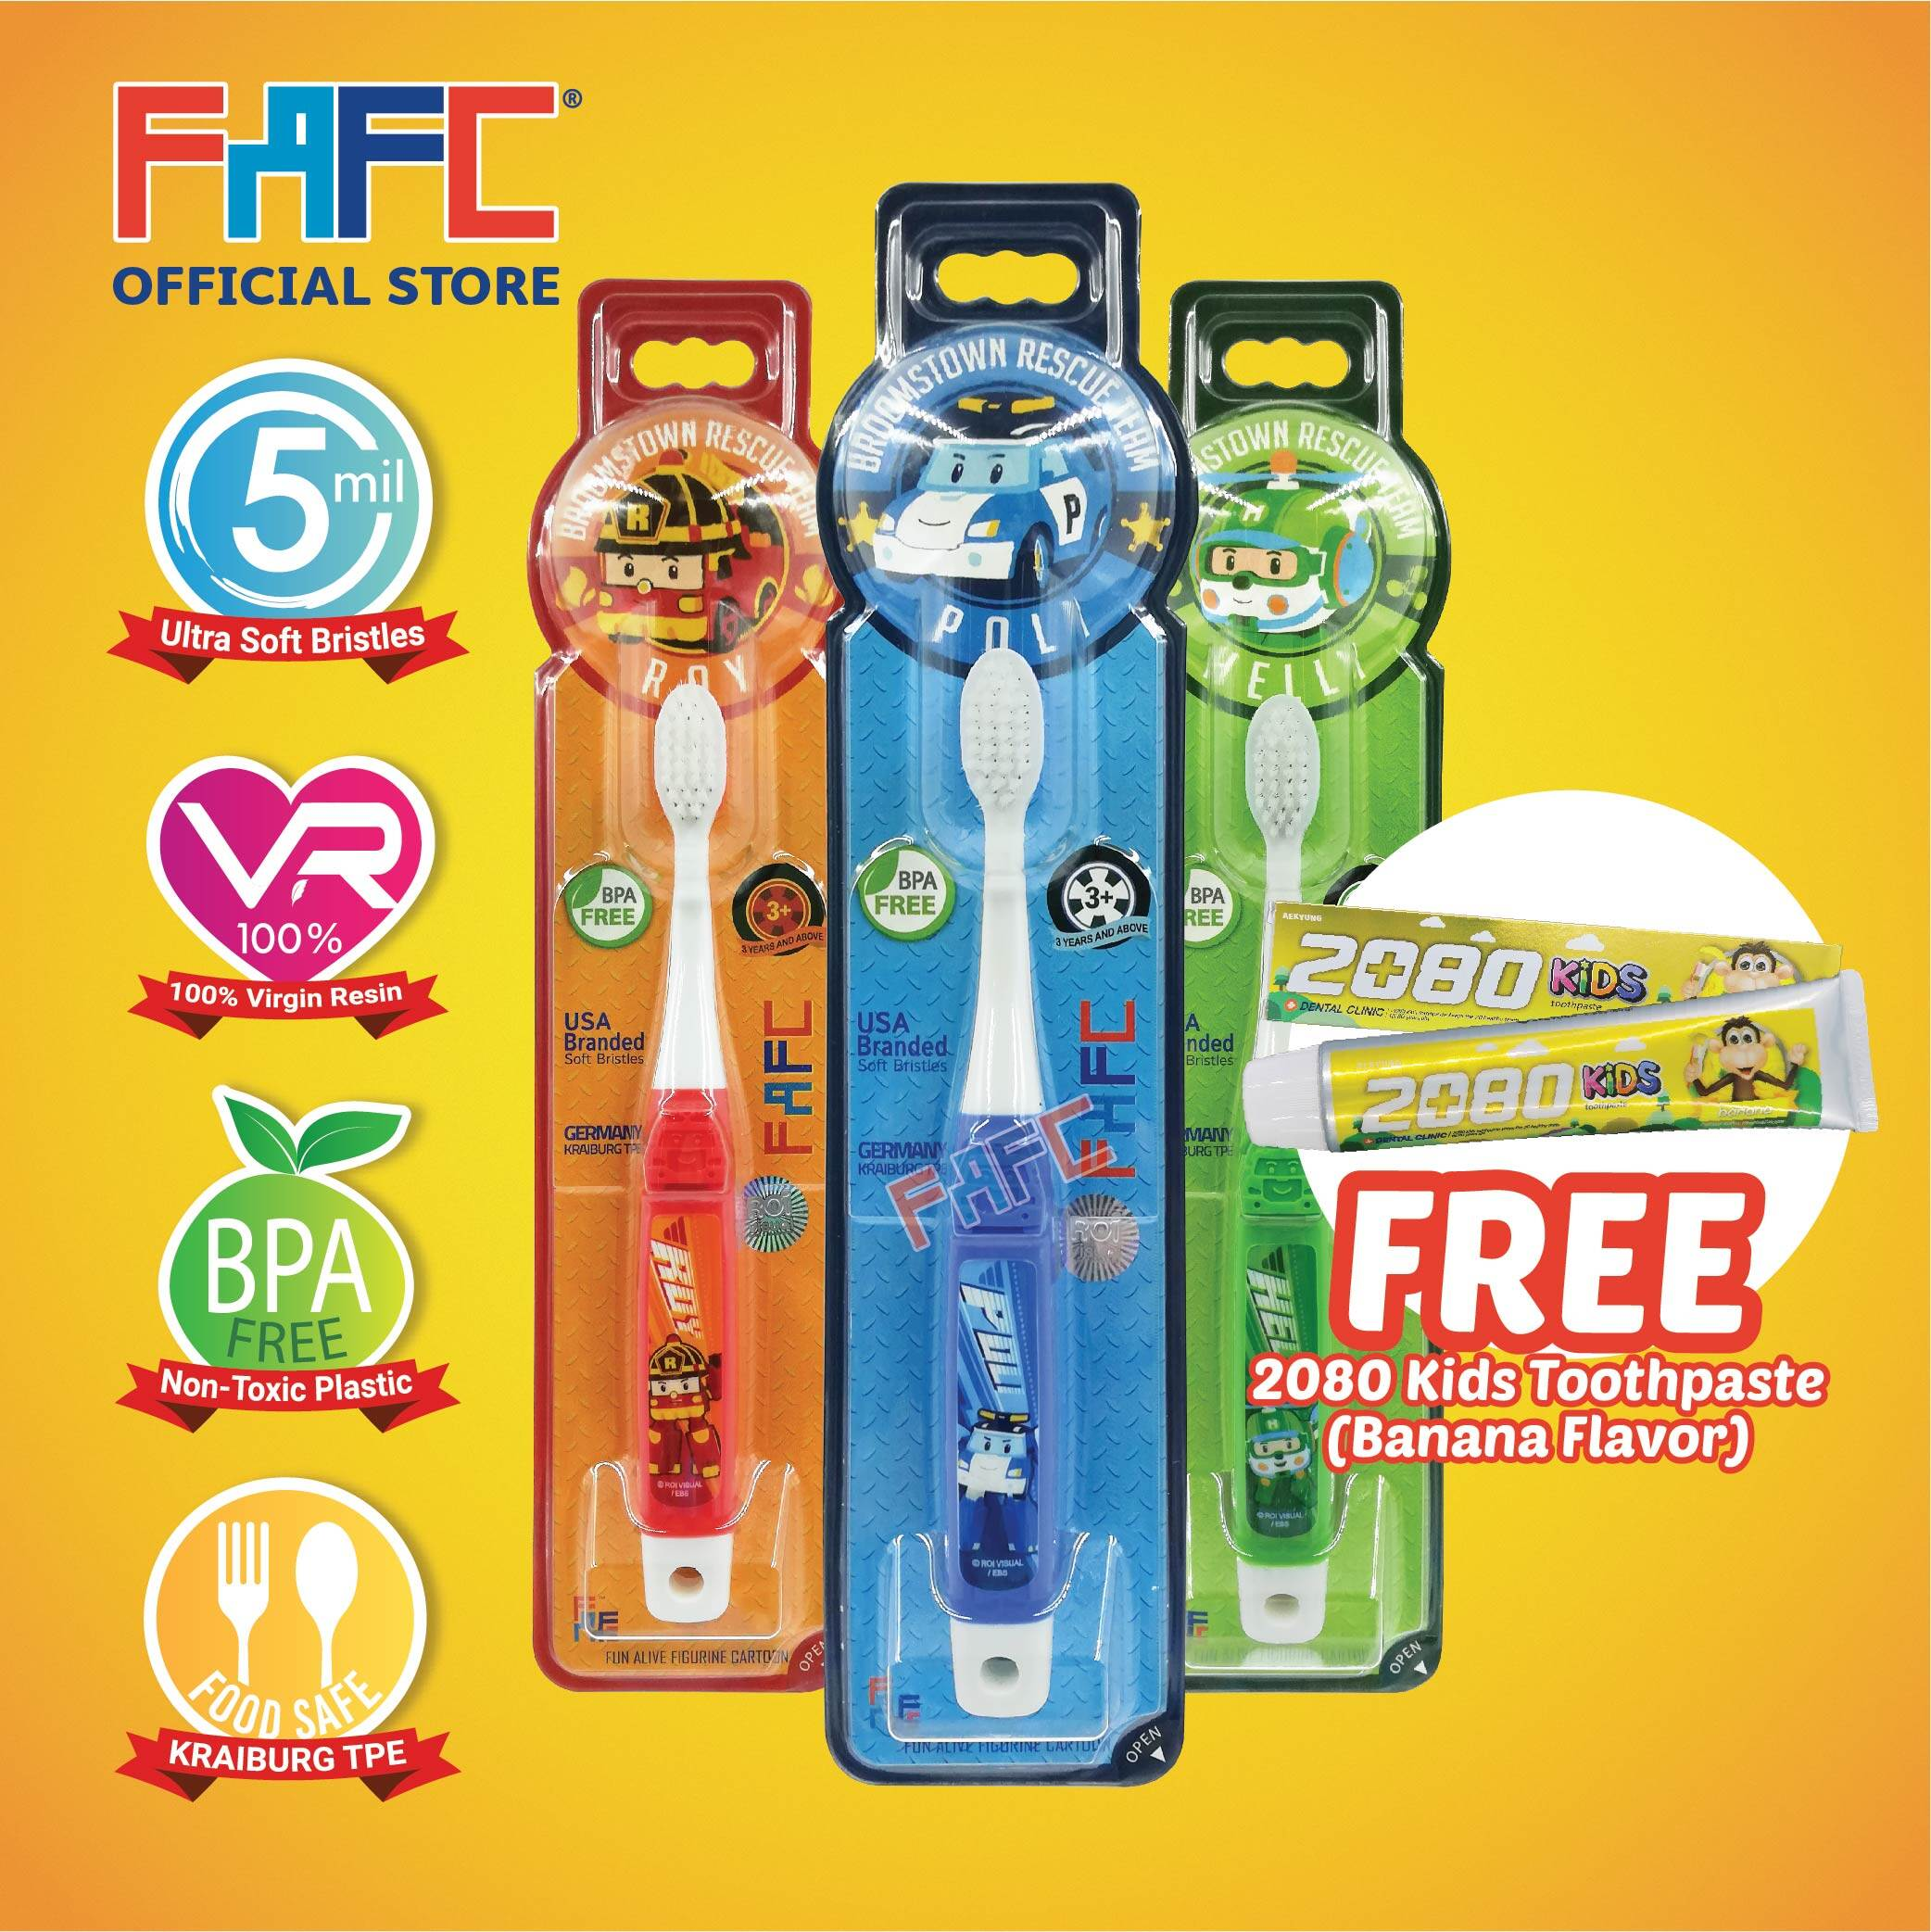 POLI ROY HELLY - (3 Pcs) FAFC Robocar Poli Hook Kids Toothbrush FREE 2080 Kids Toothpaste (Banana Flavor)